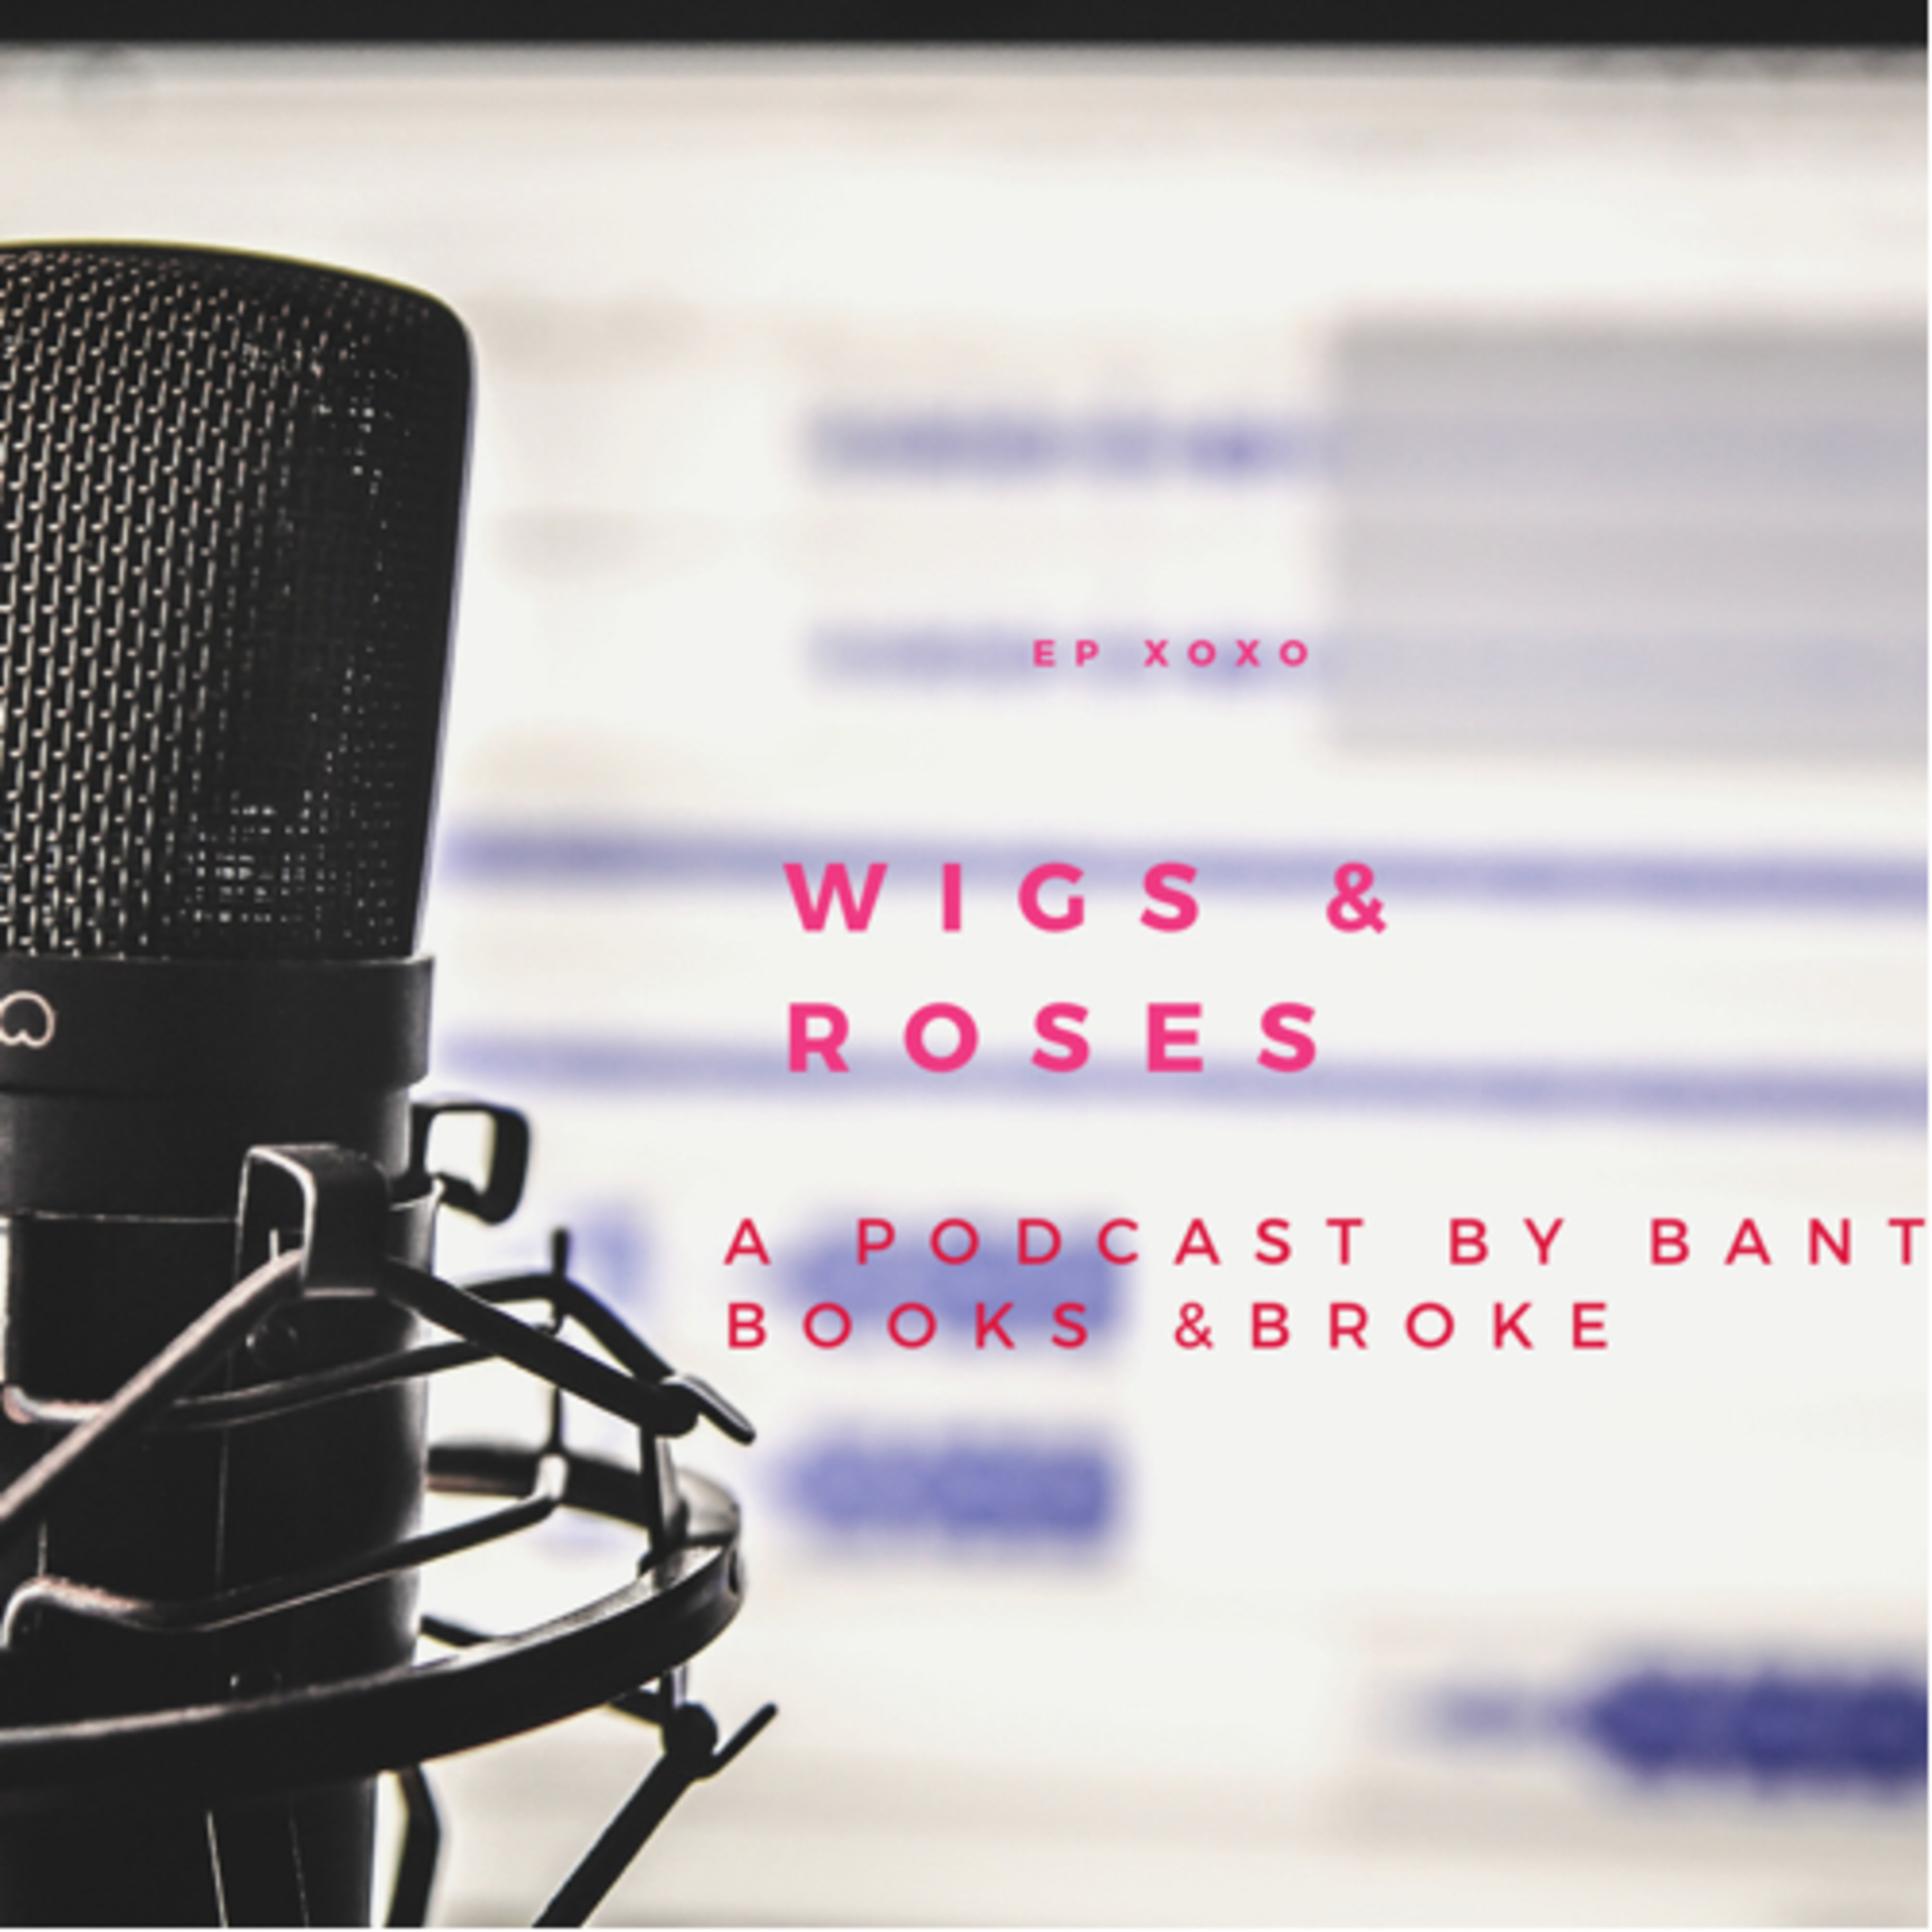 The Bants Books and Broke podcast on Jamit